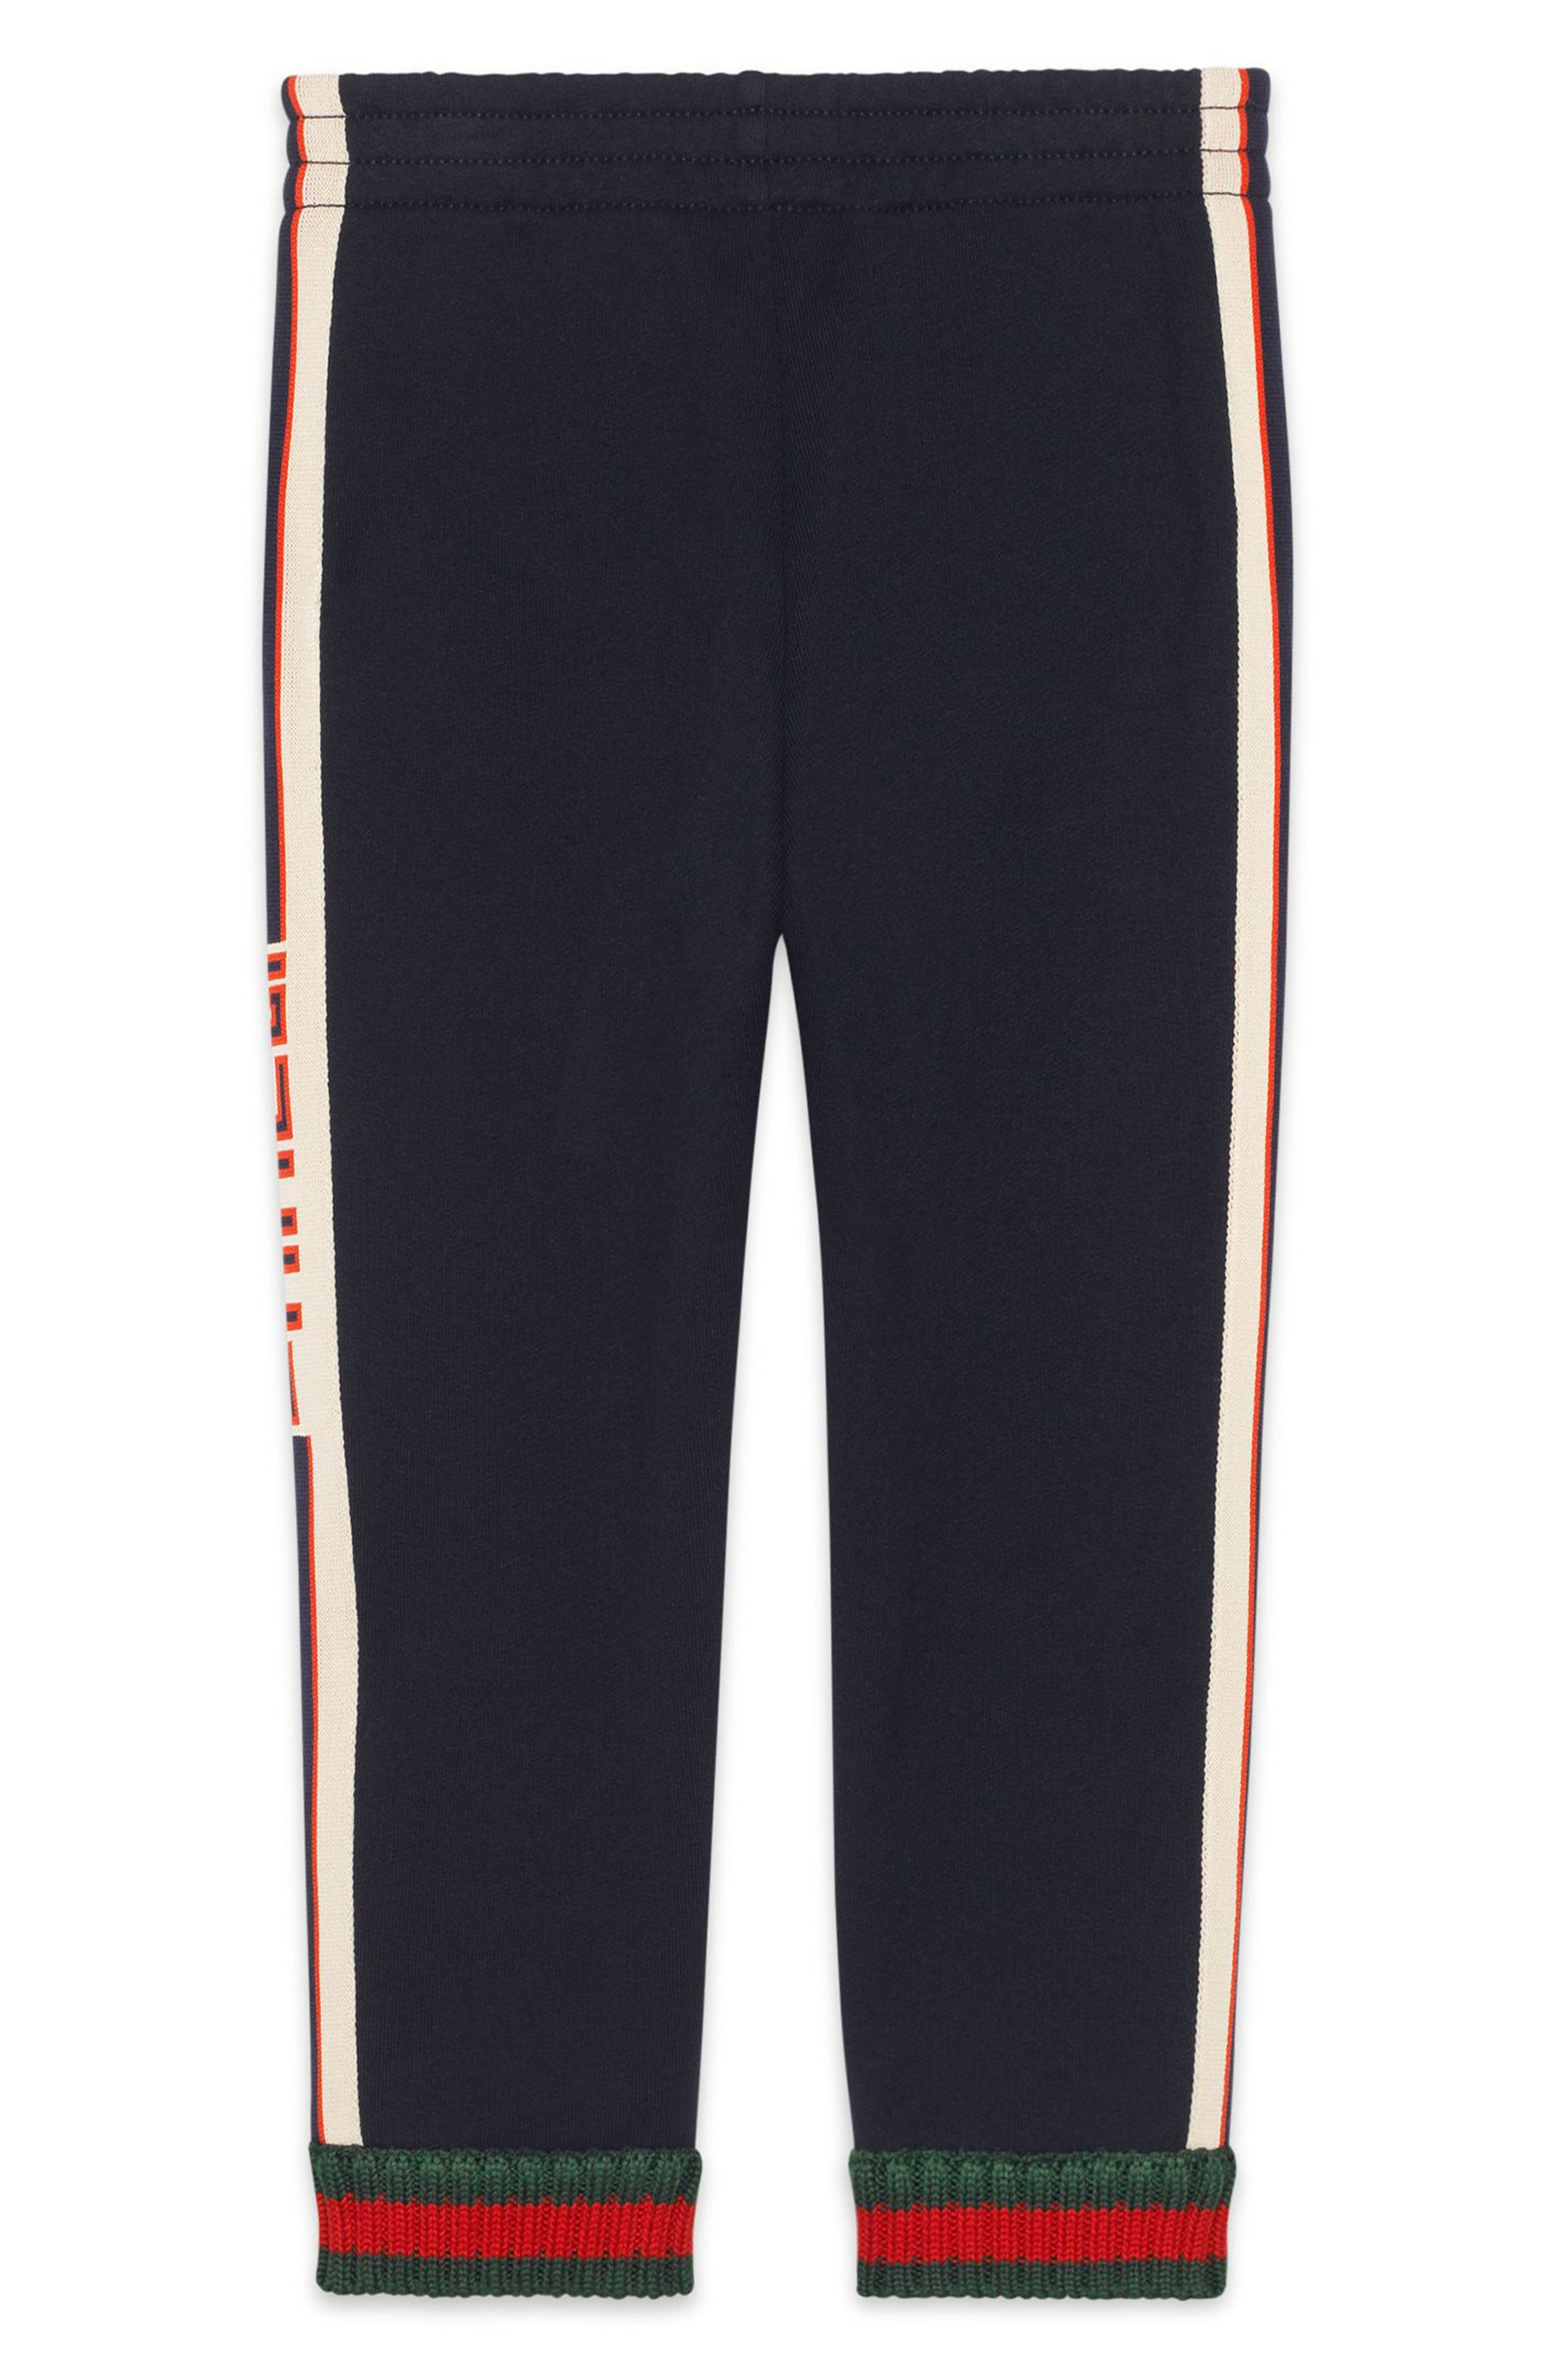 GUCCI, Logo Stripe Jogging Pants, Alternate thumbnail 2, color, PERIWINKLE/ RED